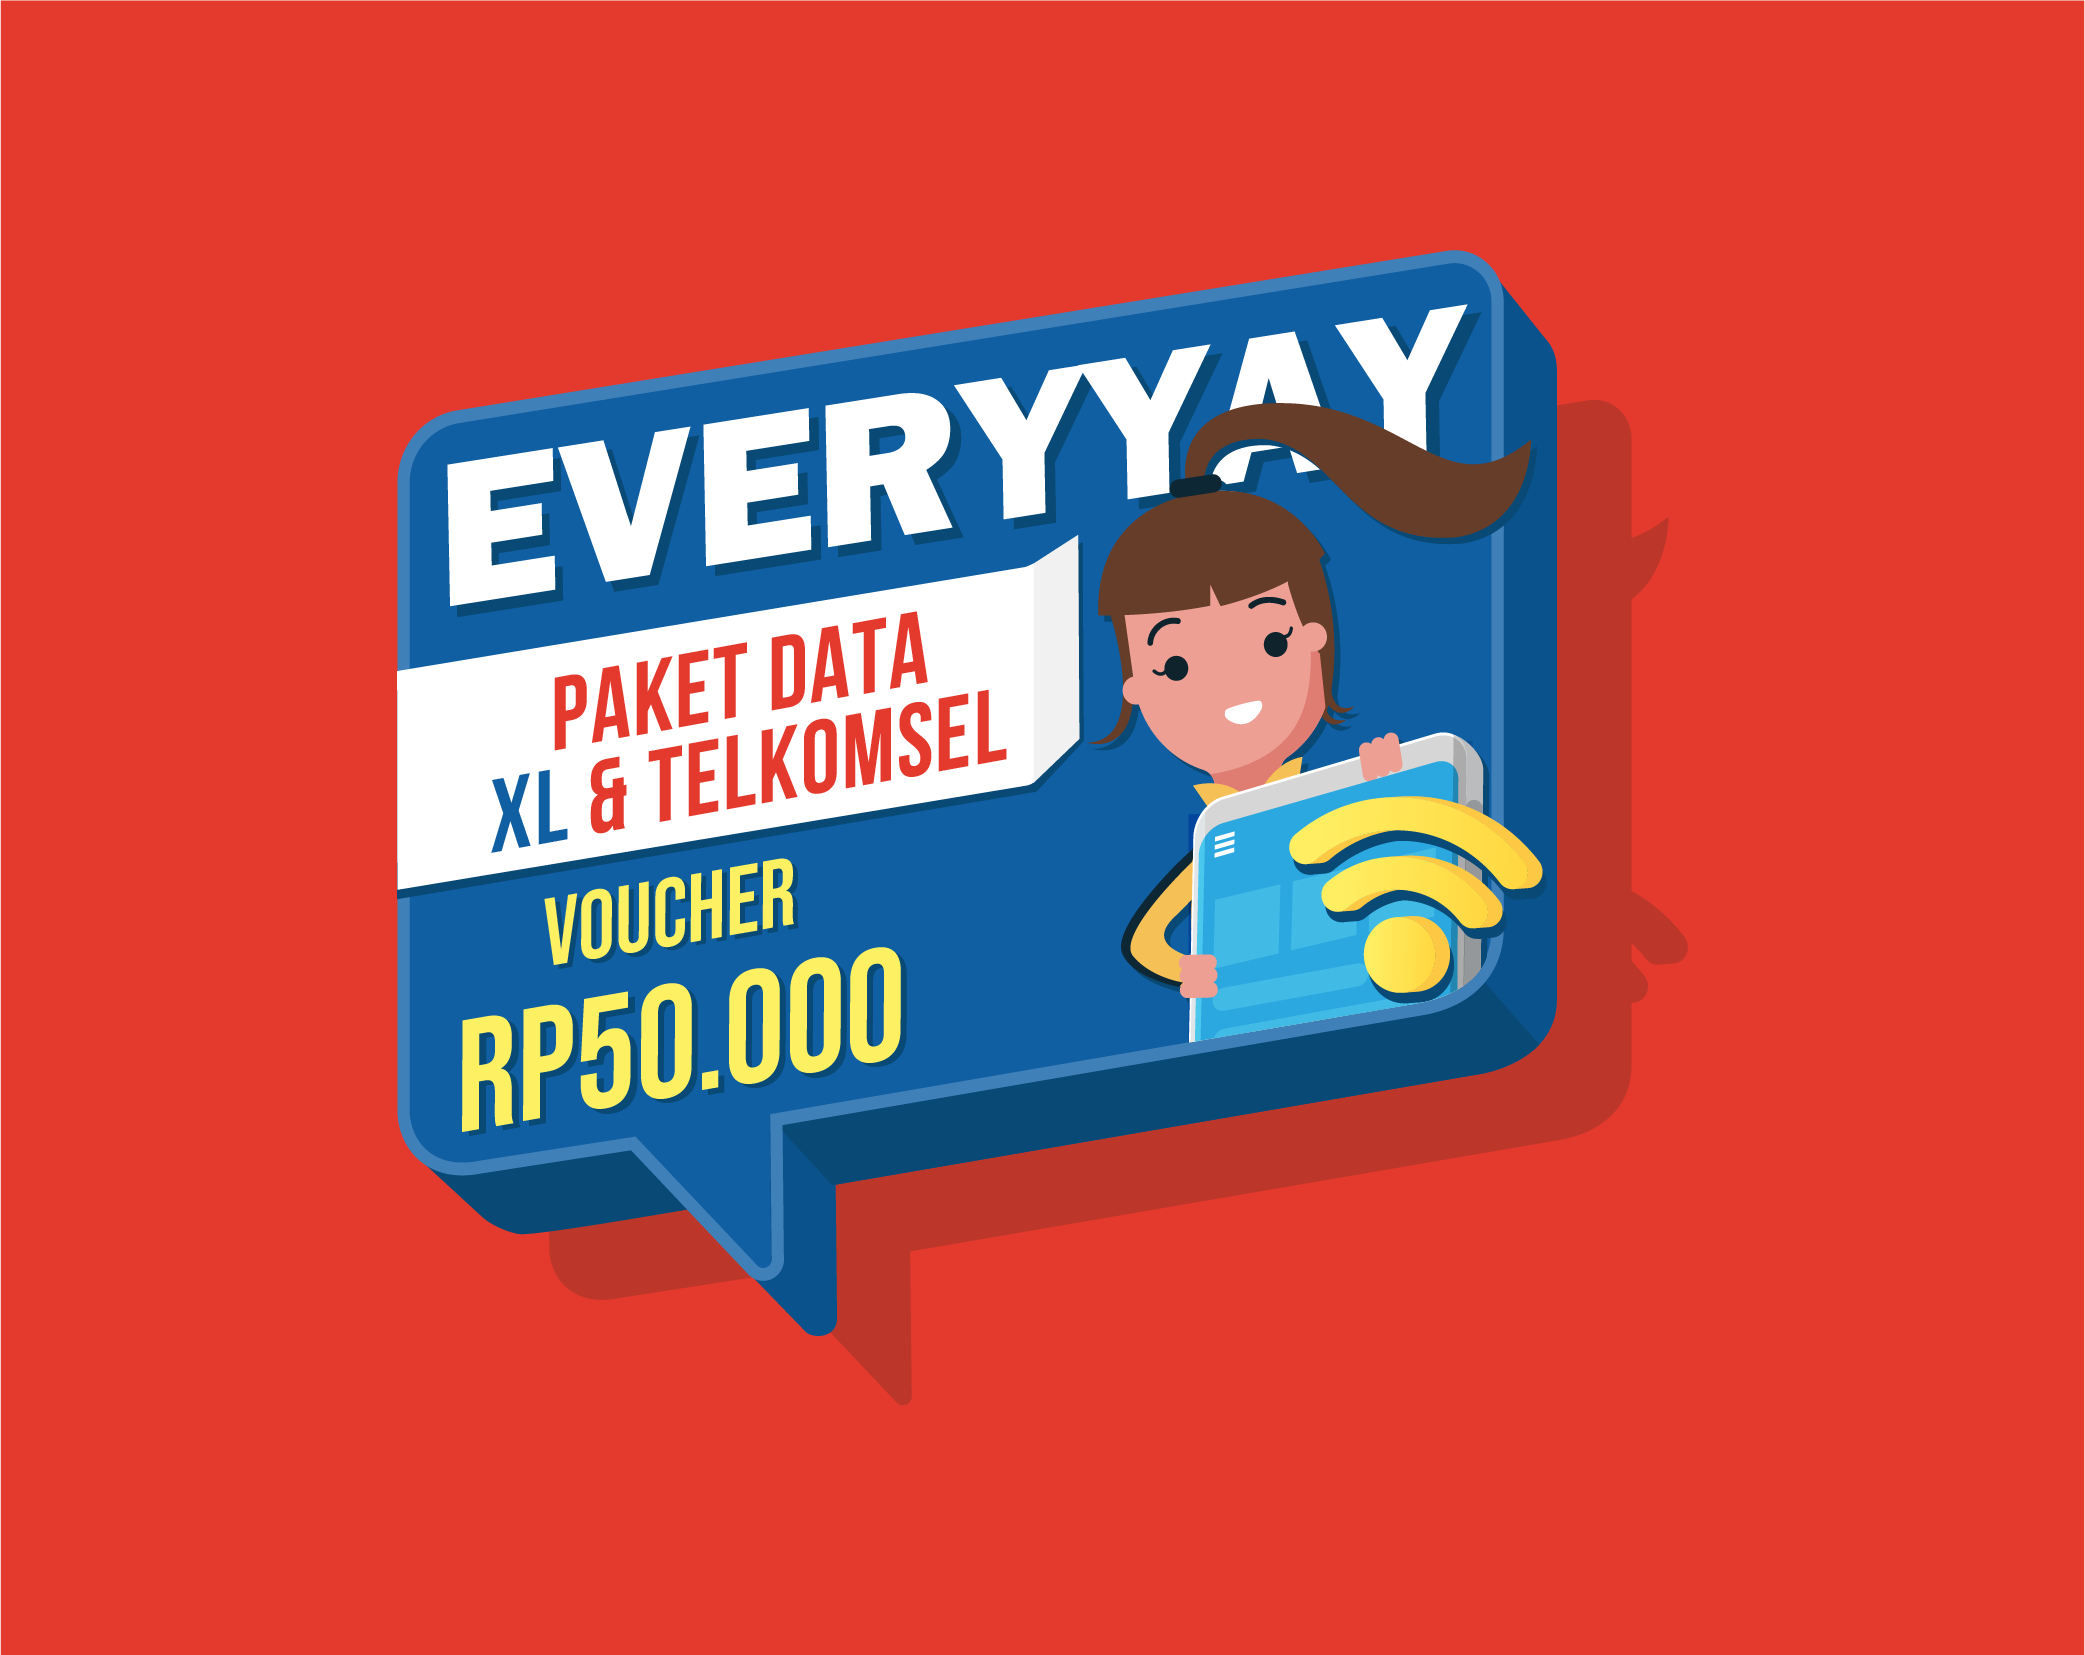 paket-data-xl-telkomsel